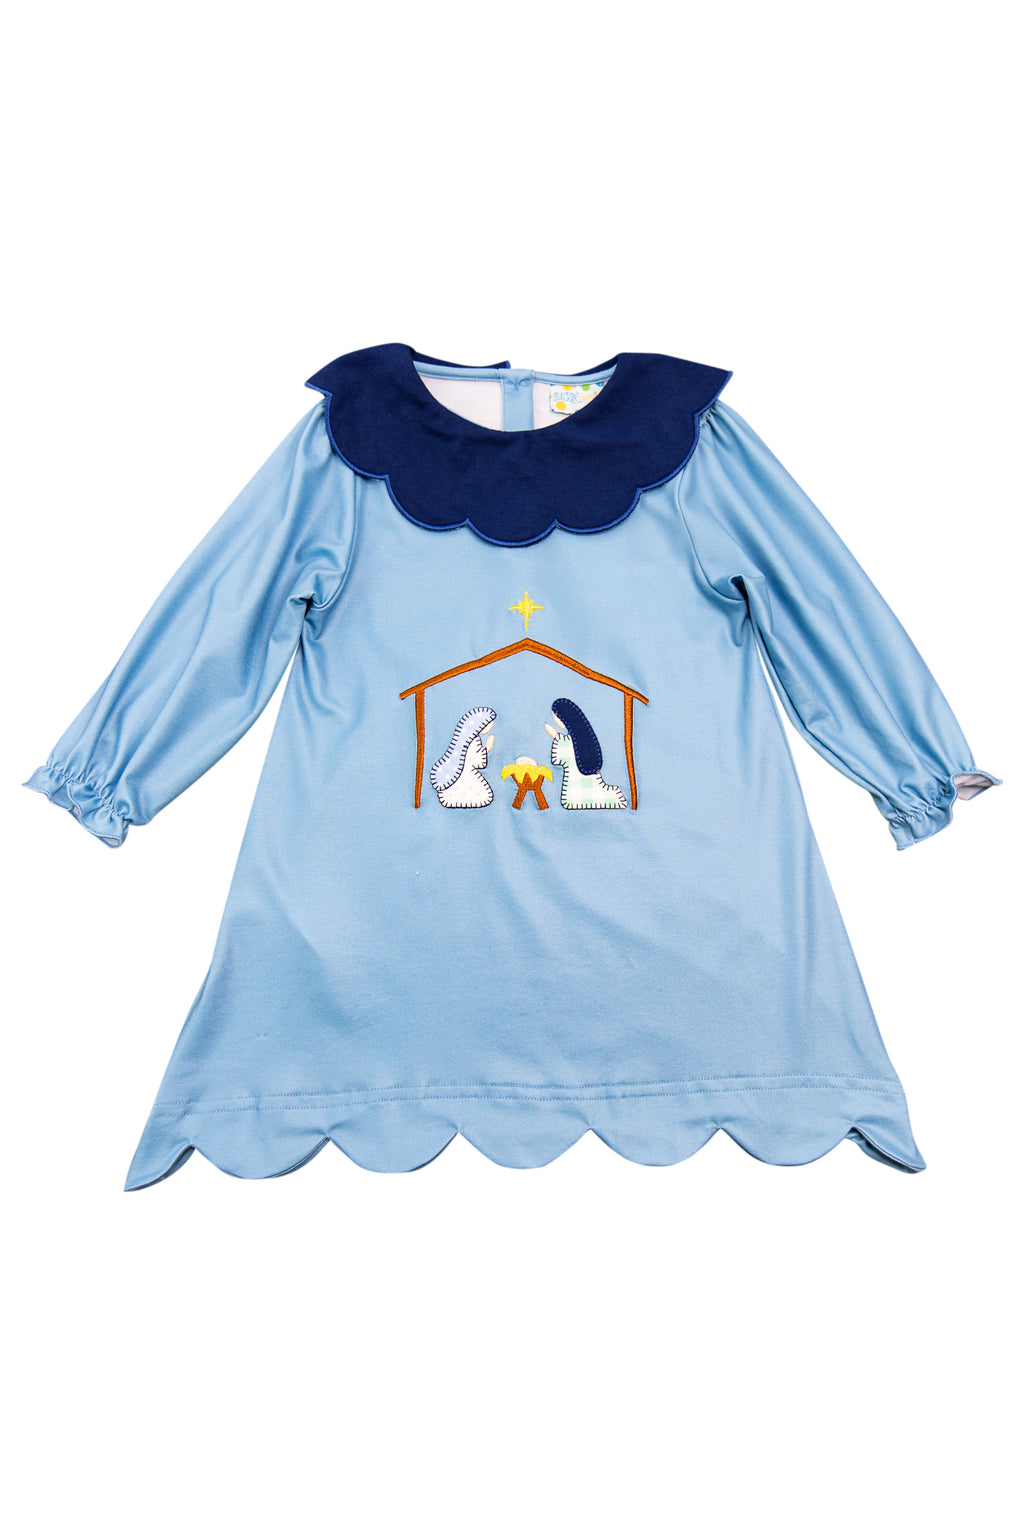 Girls Nativity Dress